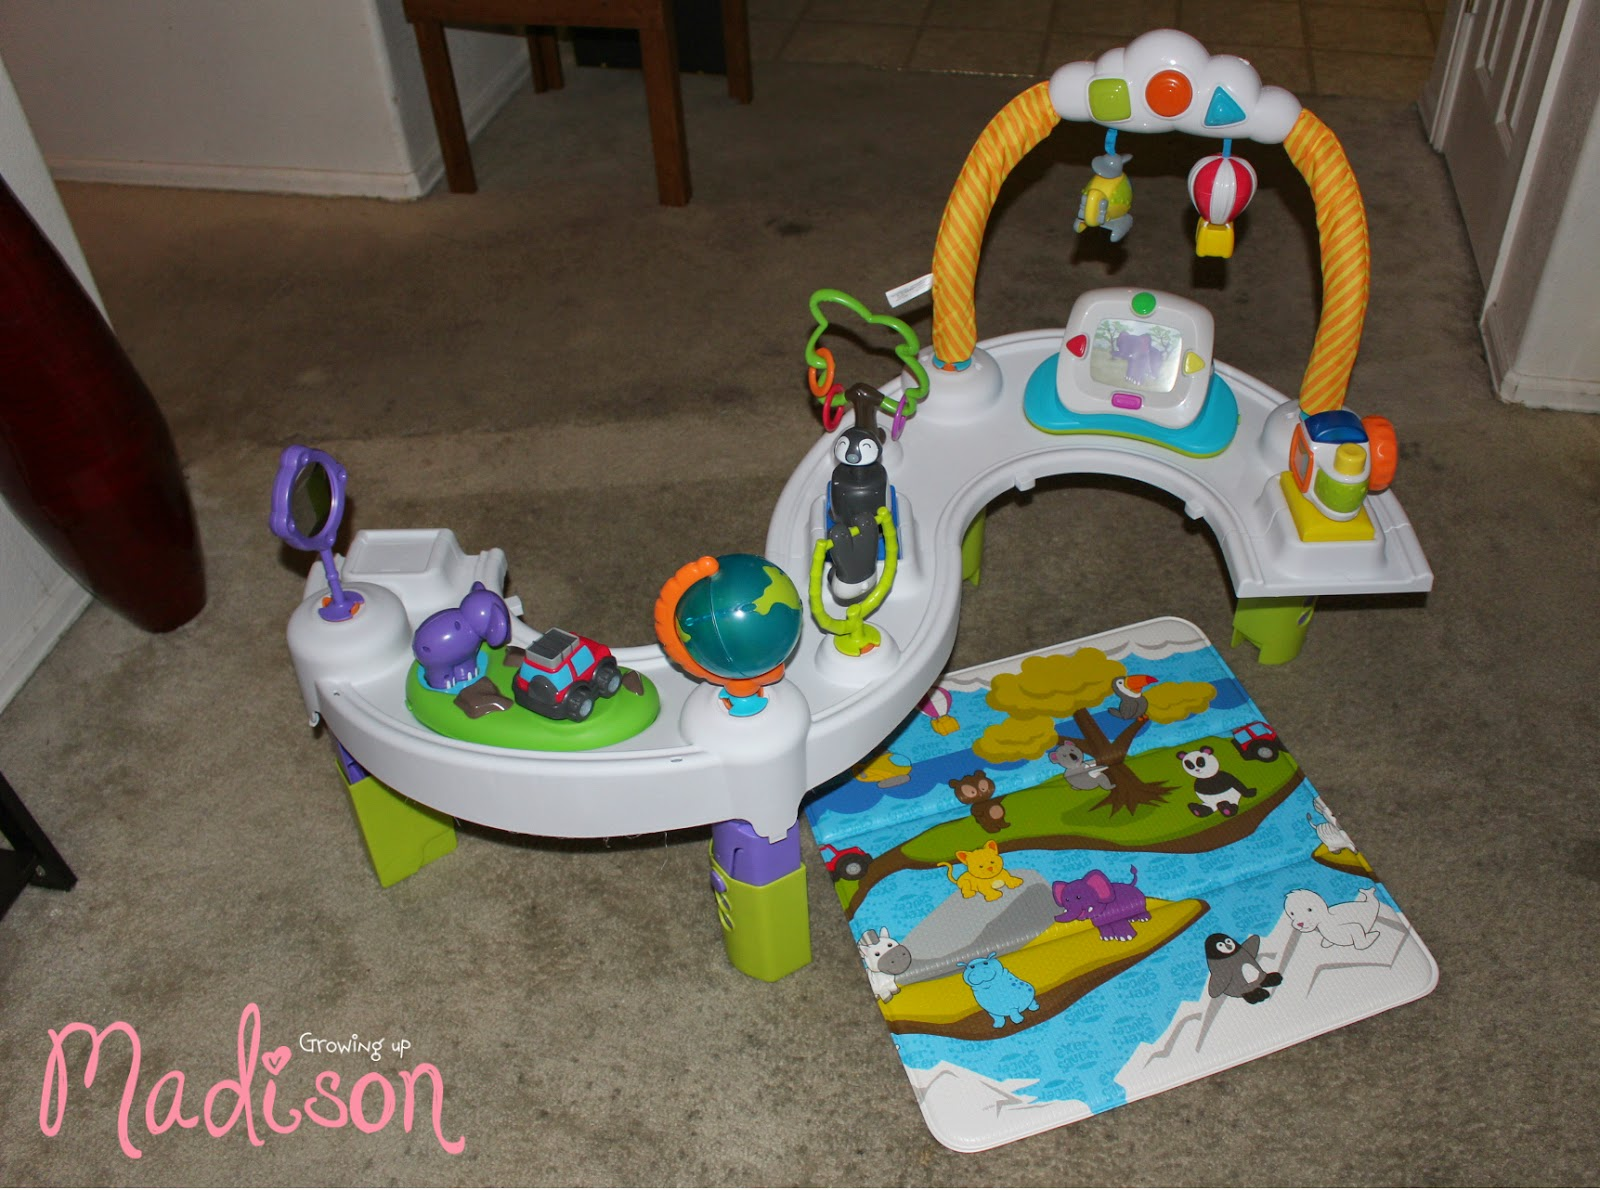 evenflo exersaucer instructions stage 3